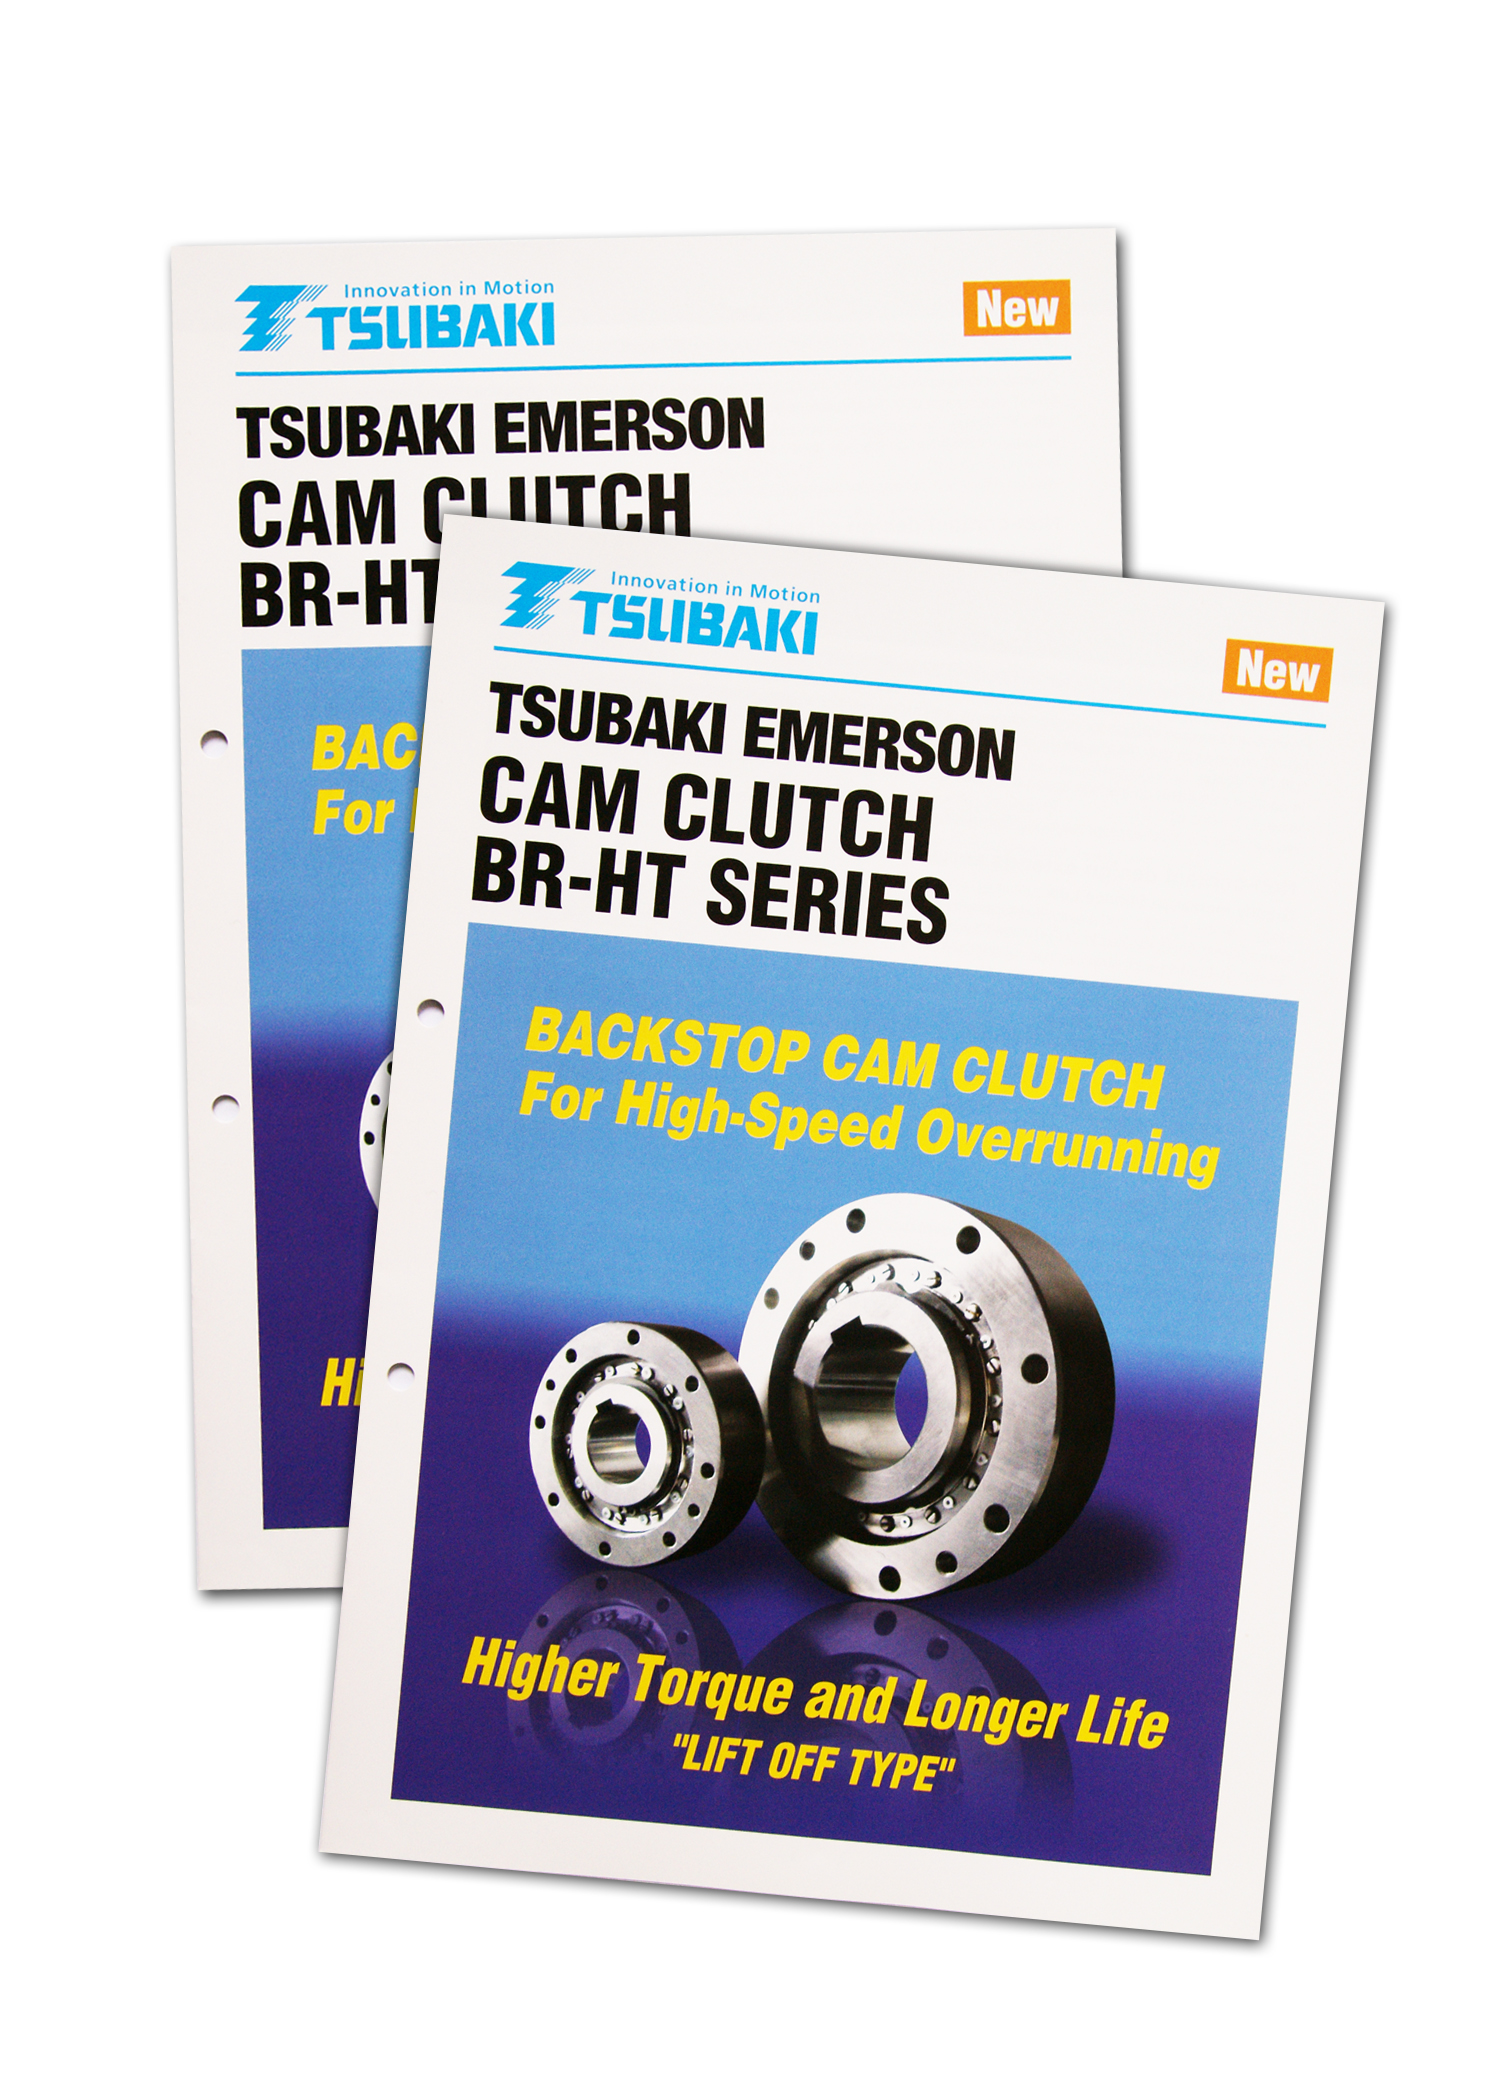 New Brochure Introduces Tsubakis BR-HT Series Cam Clutches